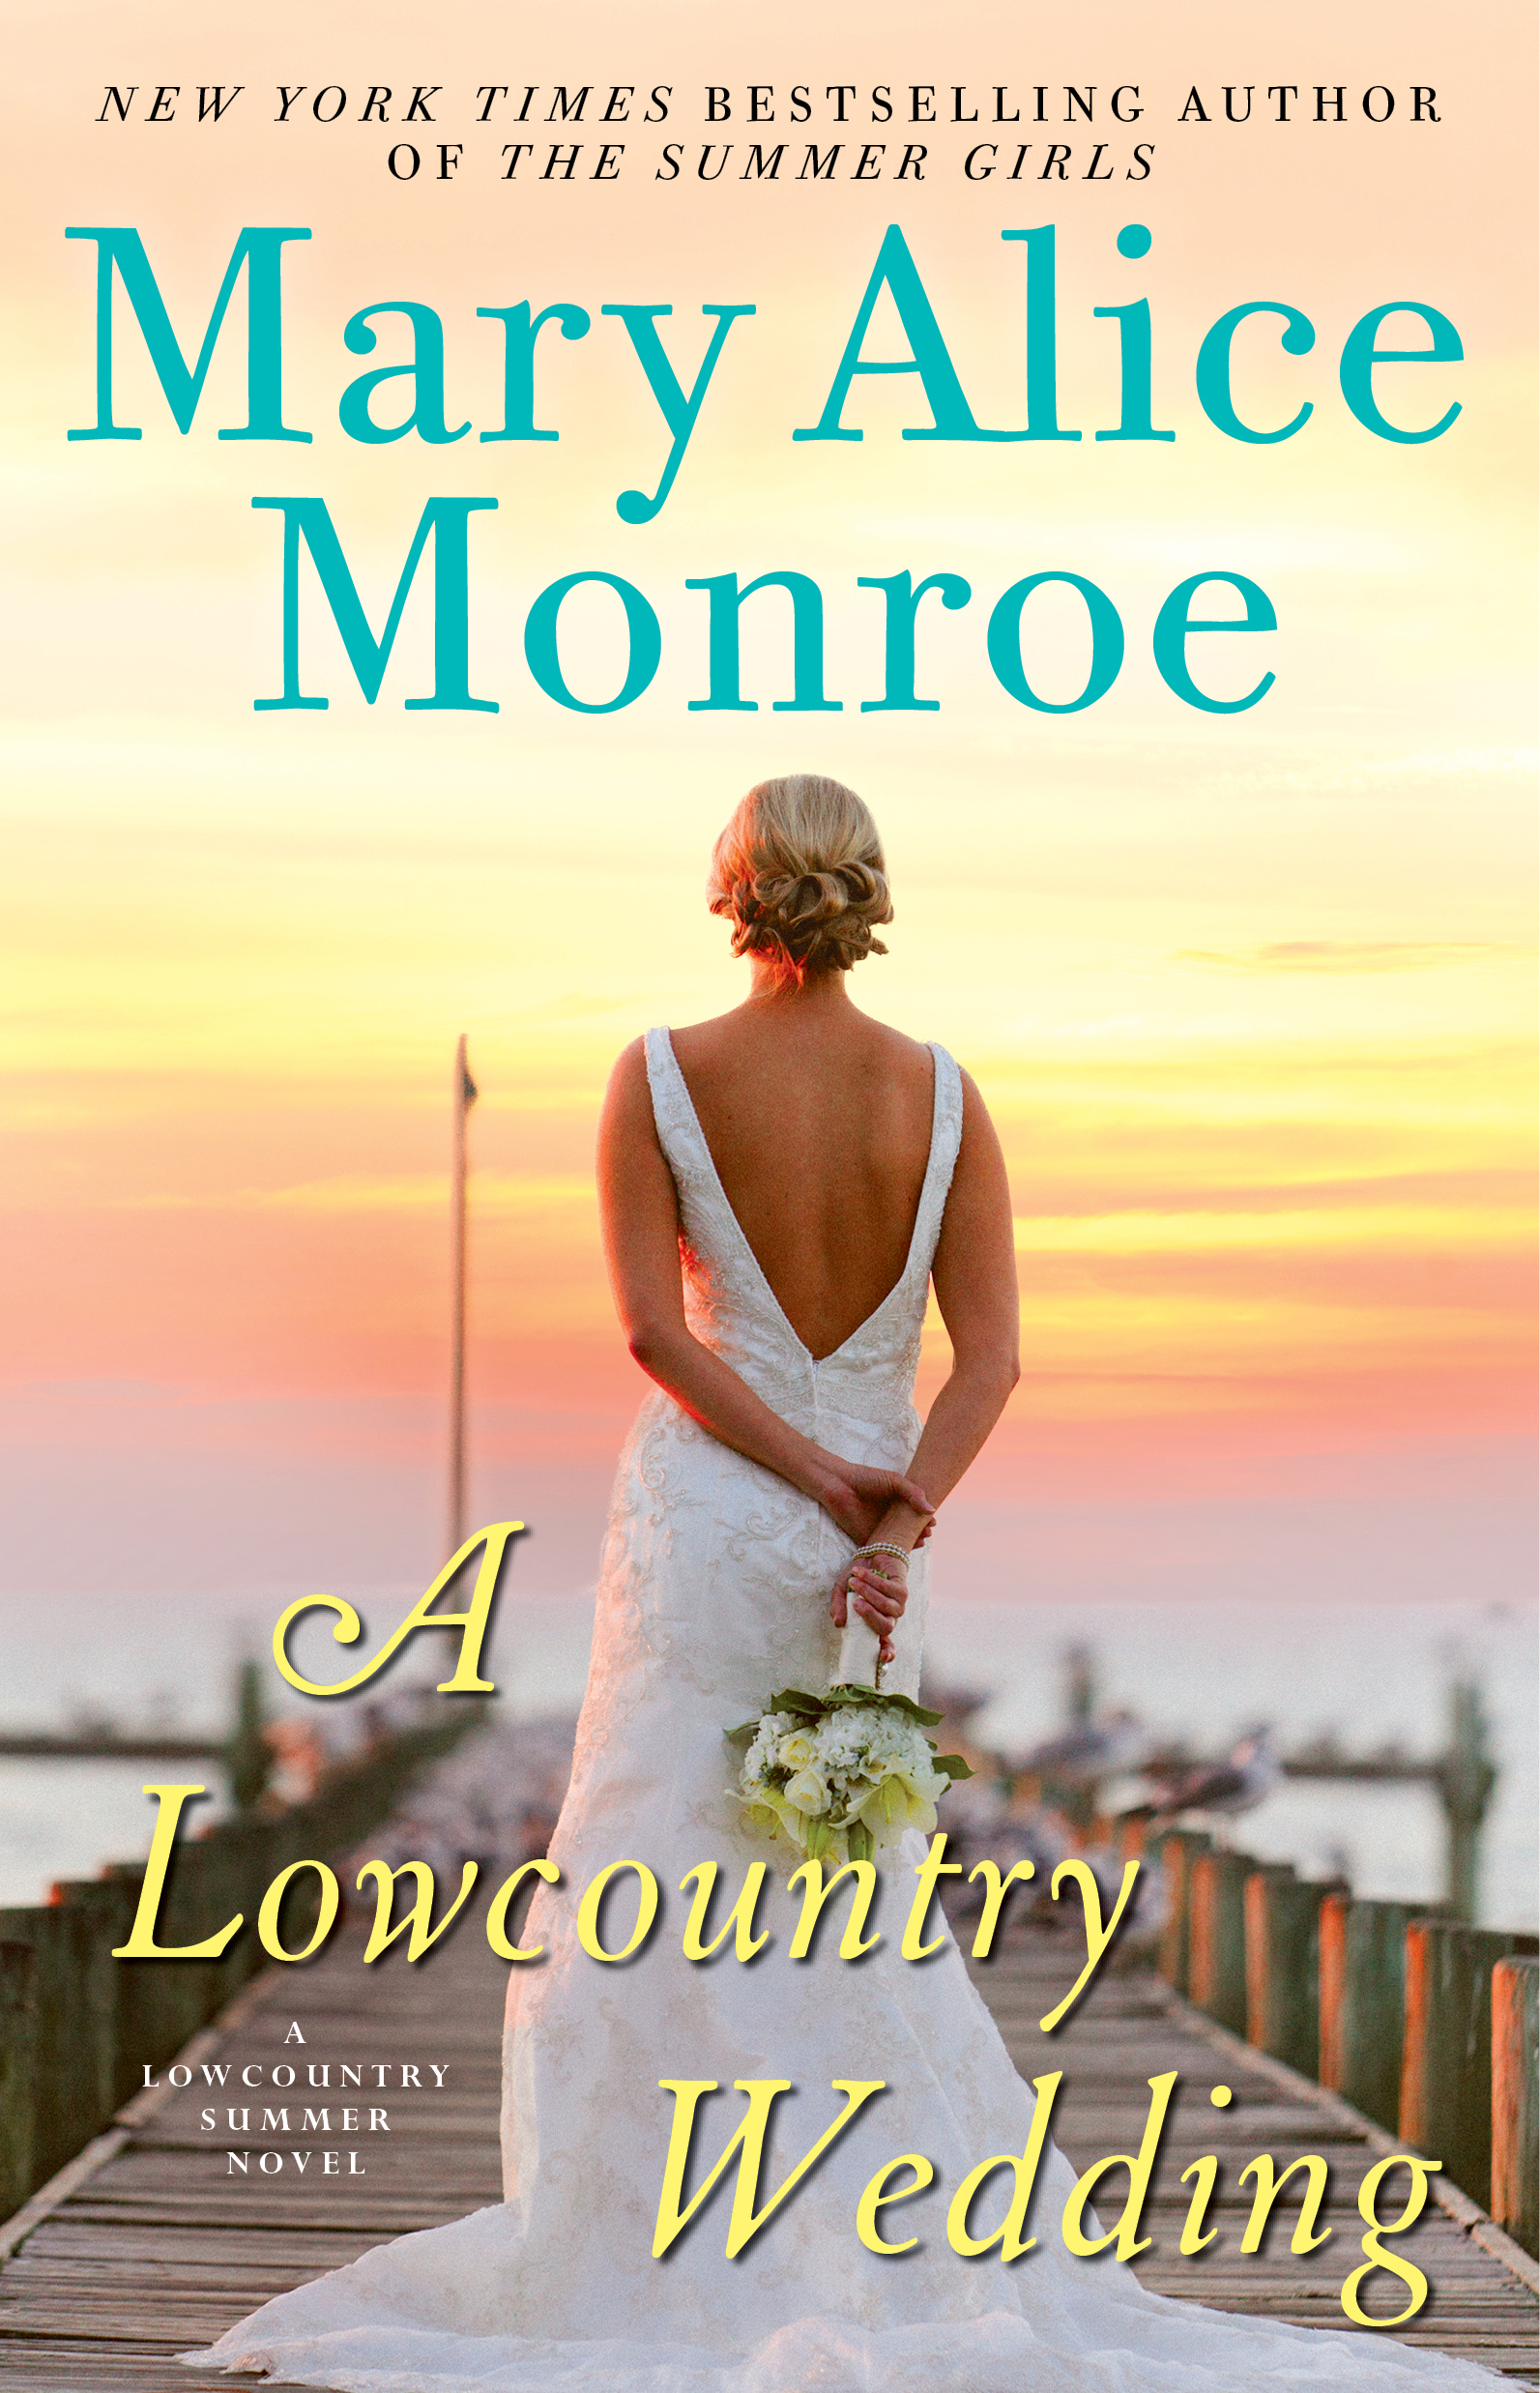 A Lowcountry Wedding front cover